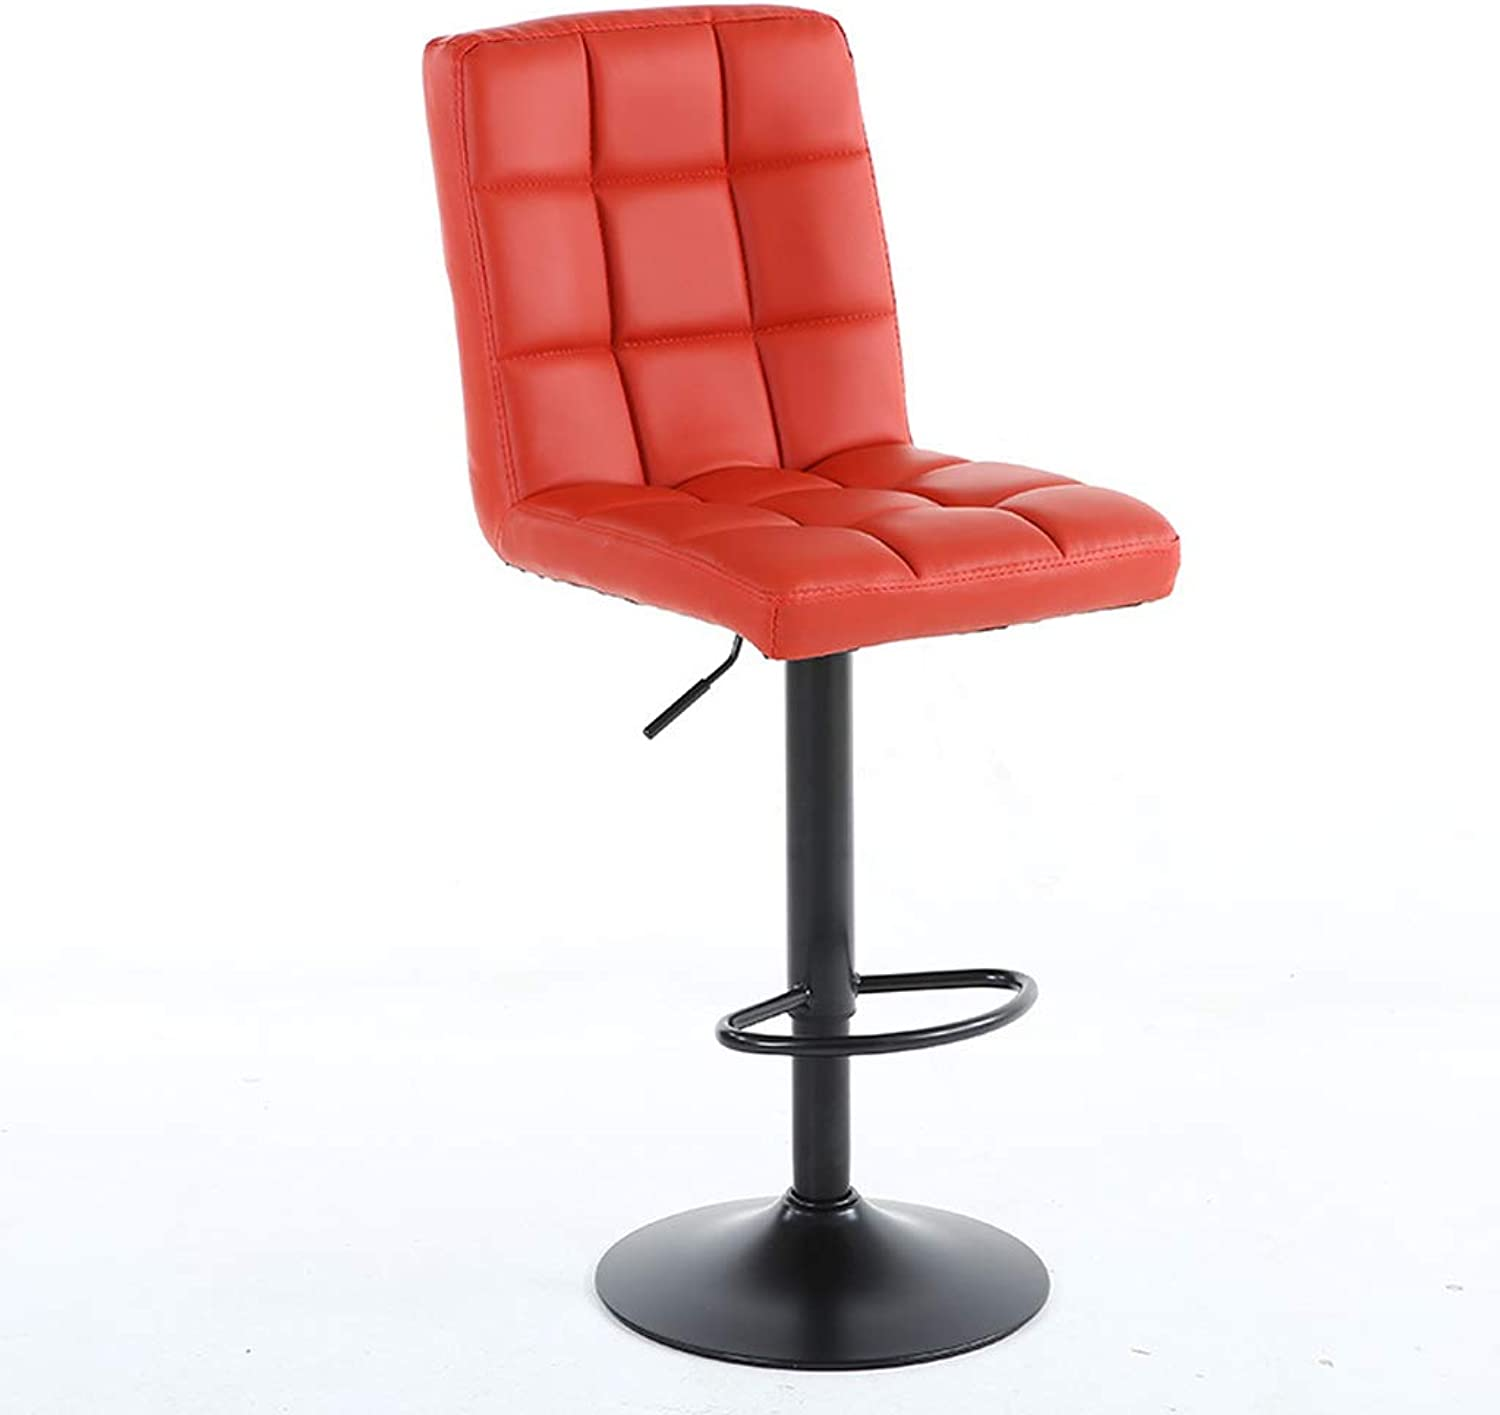 HBJP Iron Lift Chair bar Chair Simple high Stool Front Desk Cashier Bench, 40 (63  83cm), Three colors Optional bar Chair (color   Red)